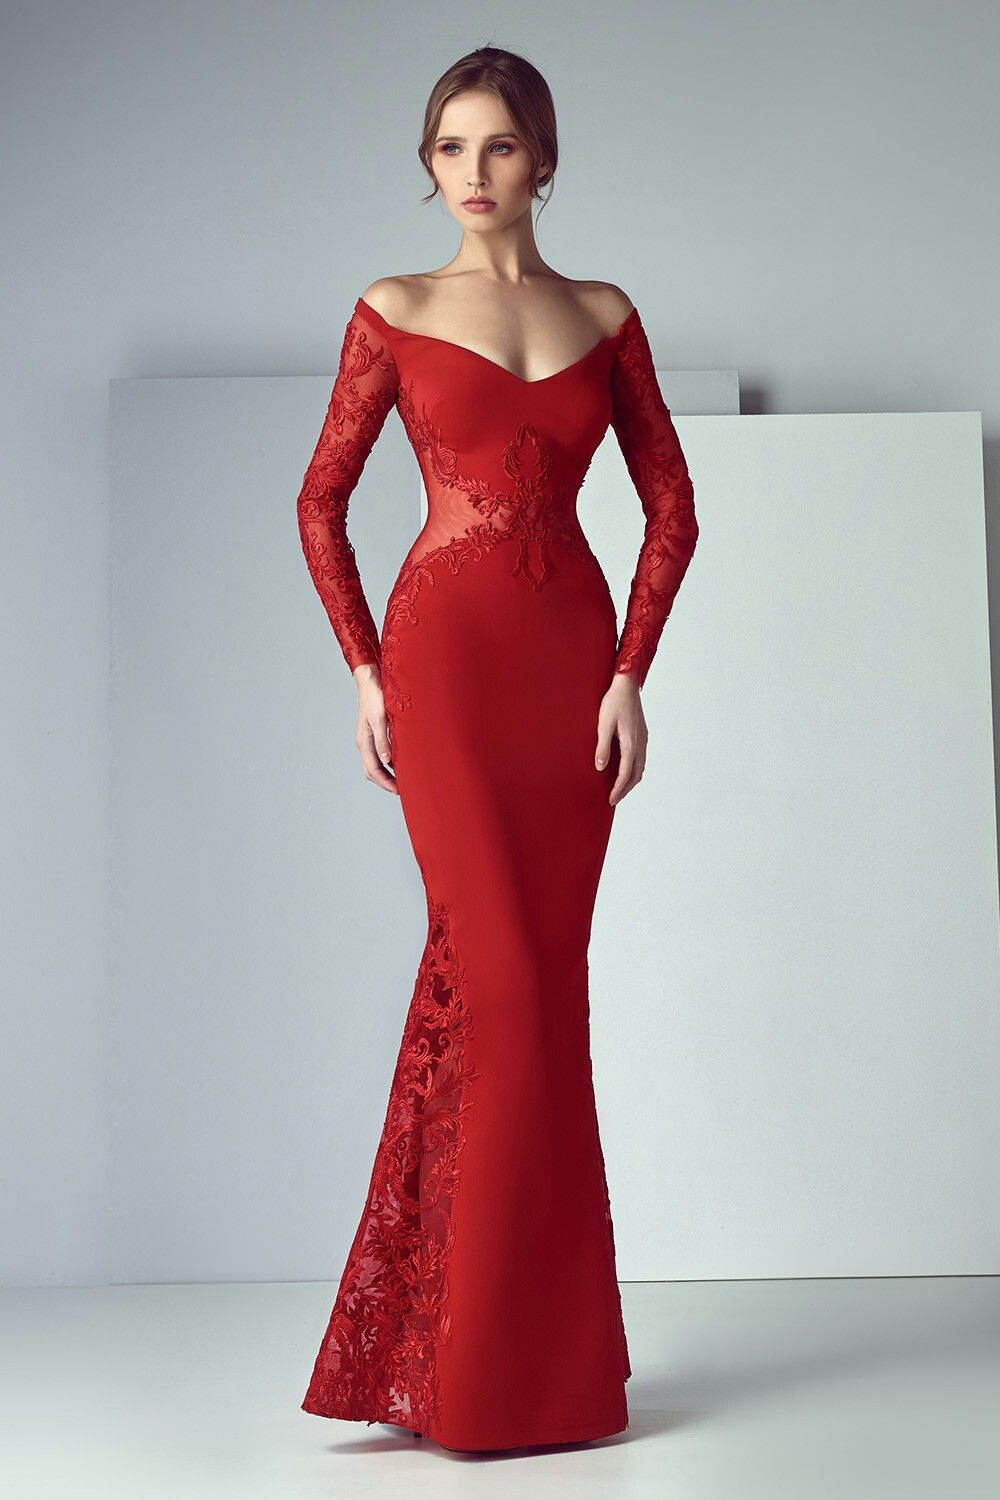 Fine Red Long Party Dress Festooning - All Wedding Dresses ...